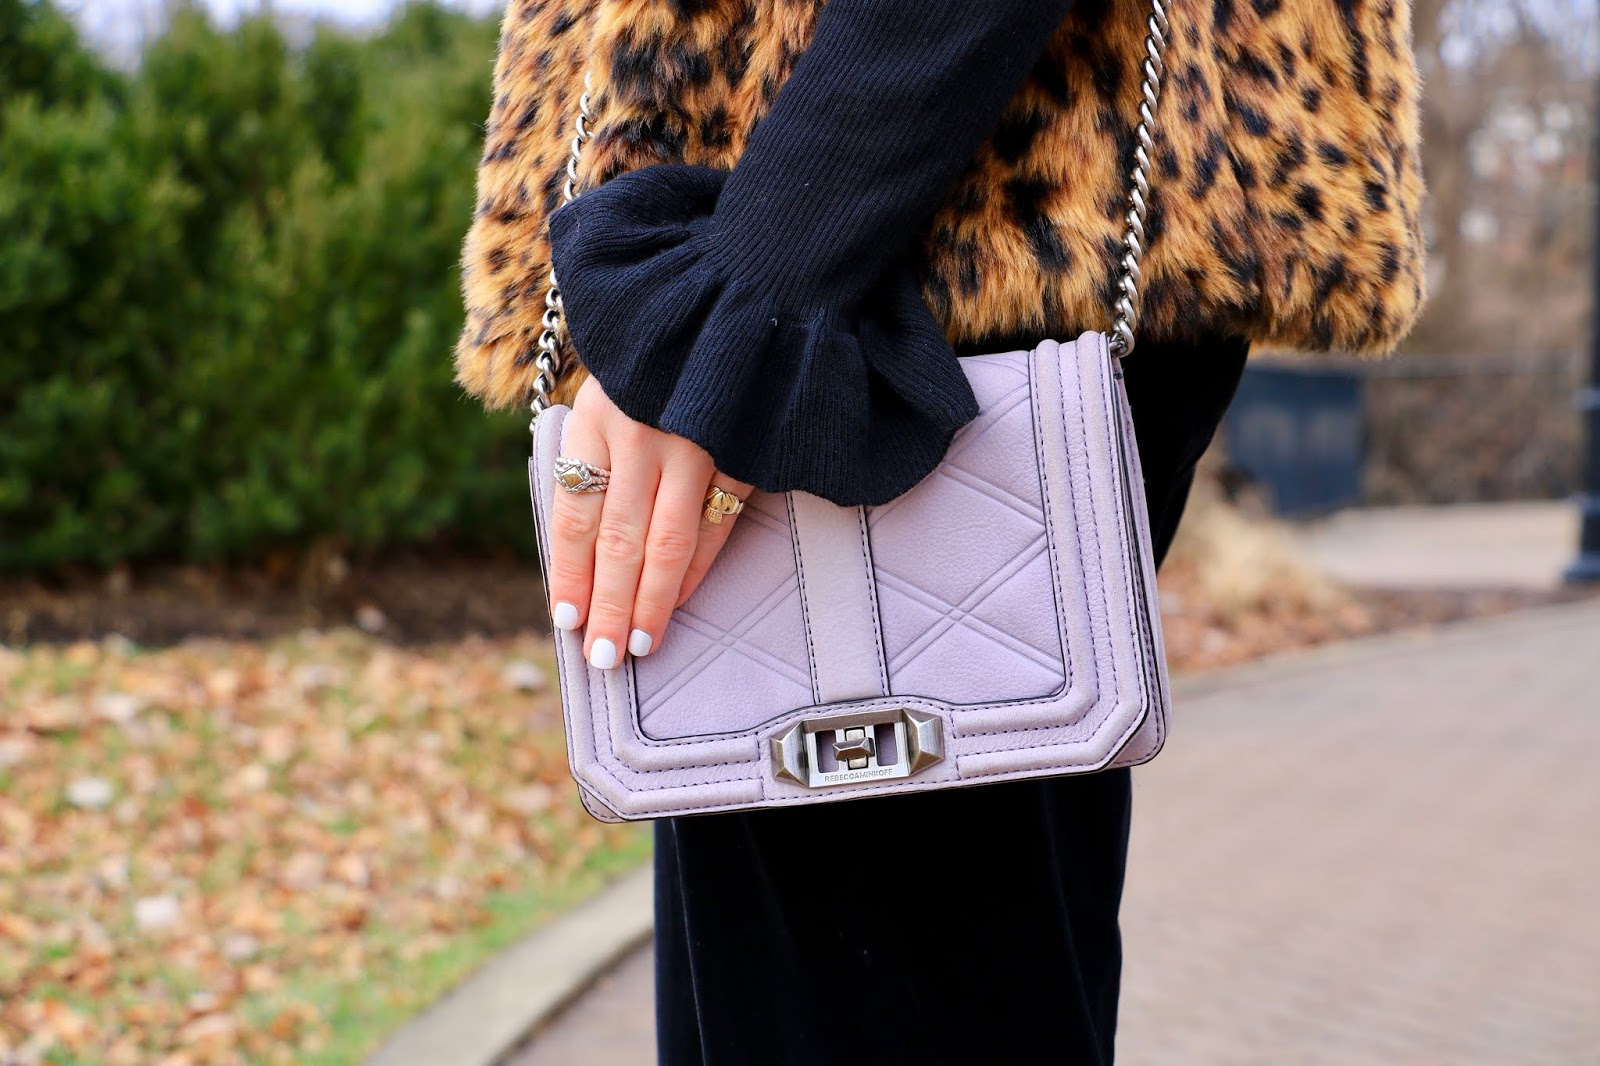 Nyc fashion blogger Kathleen Harper's Rebecca Minkoff lavender purse